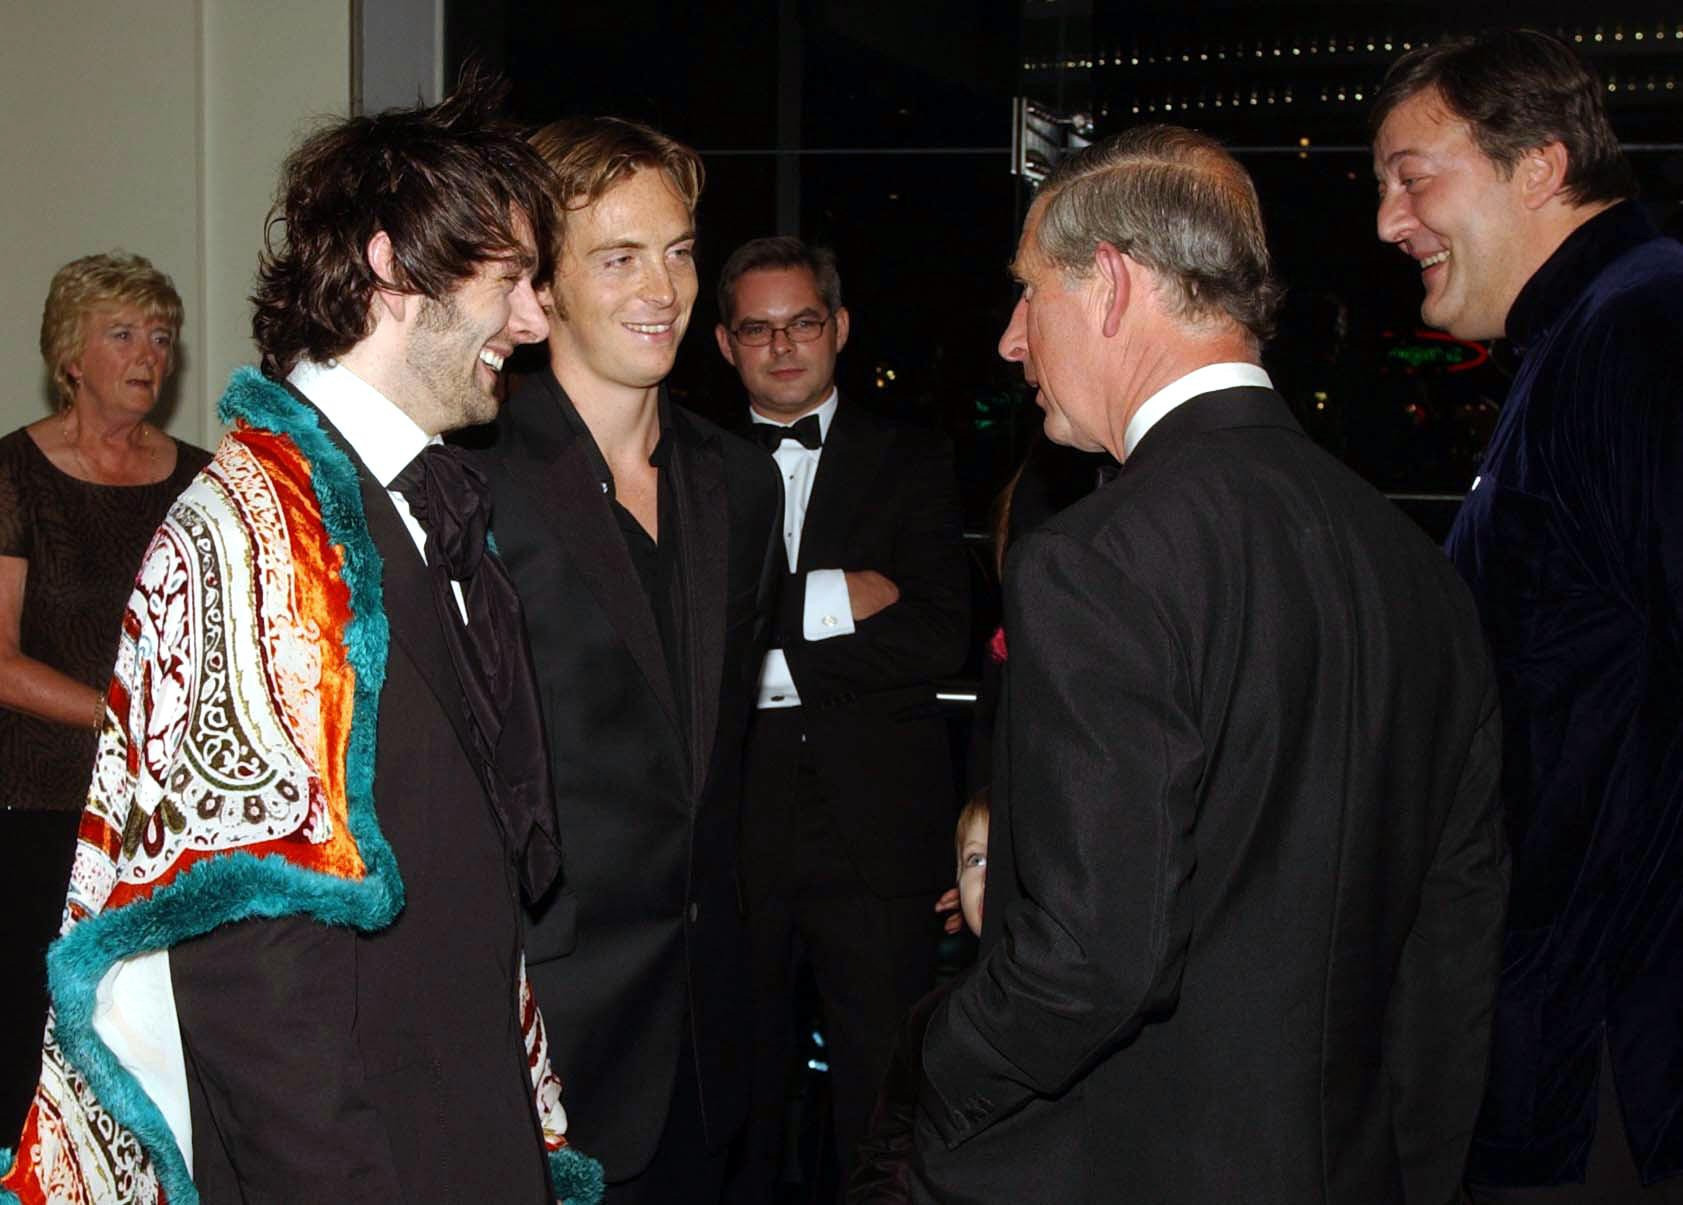 The Prince of Wales talks with actor's Michael Sheen (left), Stephen Campbell Moore and Stephen Fry (far right) at the Odeon, Leicester Square, central London, for the European Premiere of the  film 'Bright Young Things', held in aid of the Prince's Trust.